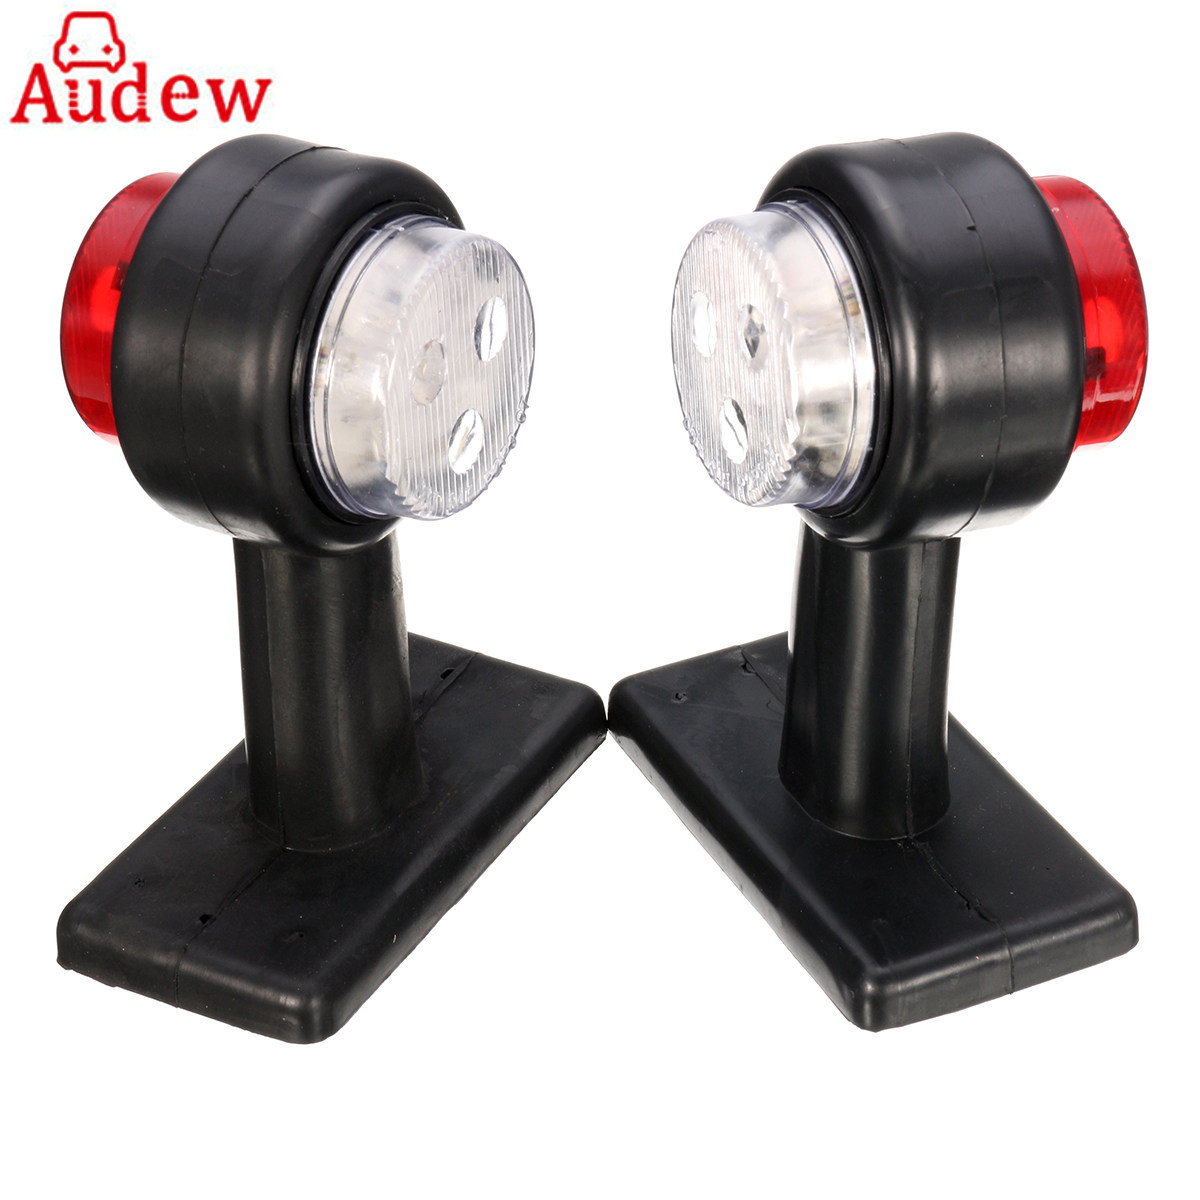 1Pair Red& White Truck Trailer Caravan Turn Light LED Double Side Marker Clearance Light Lamp 12V/24V tirol 13 to 7 pin adapter trailer 12v towbar towing caravan truck electrical converter n type plastic